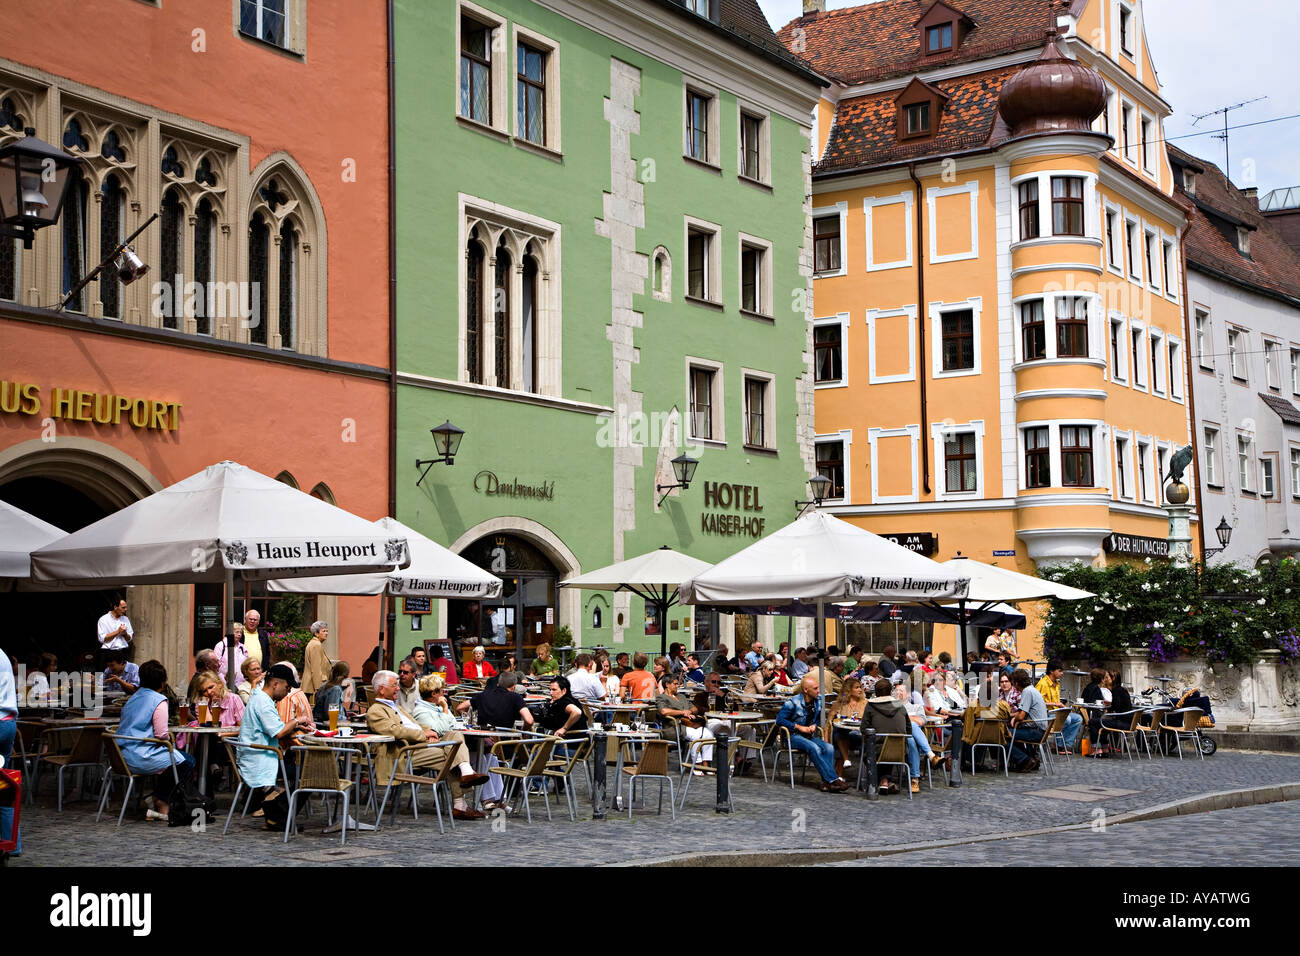 people at cafe bar in street regensburg germany stock photo royalty free image 17049387 alamy. Black Bedroom Furniture Sets. Home Design Ideas